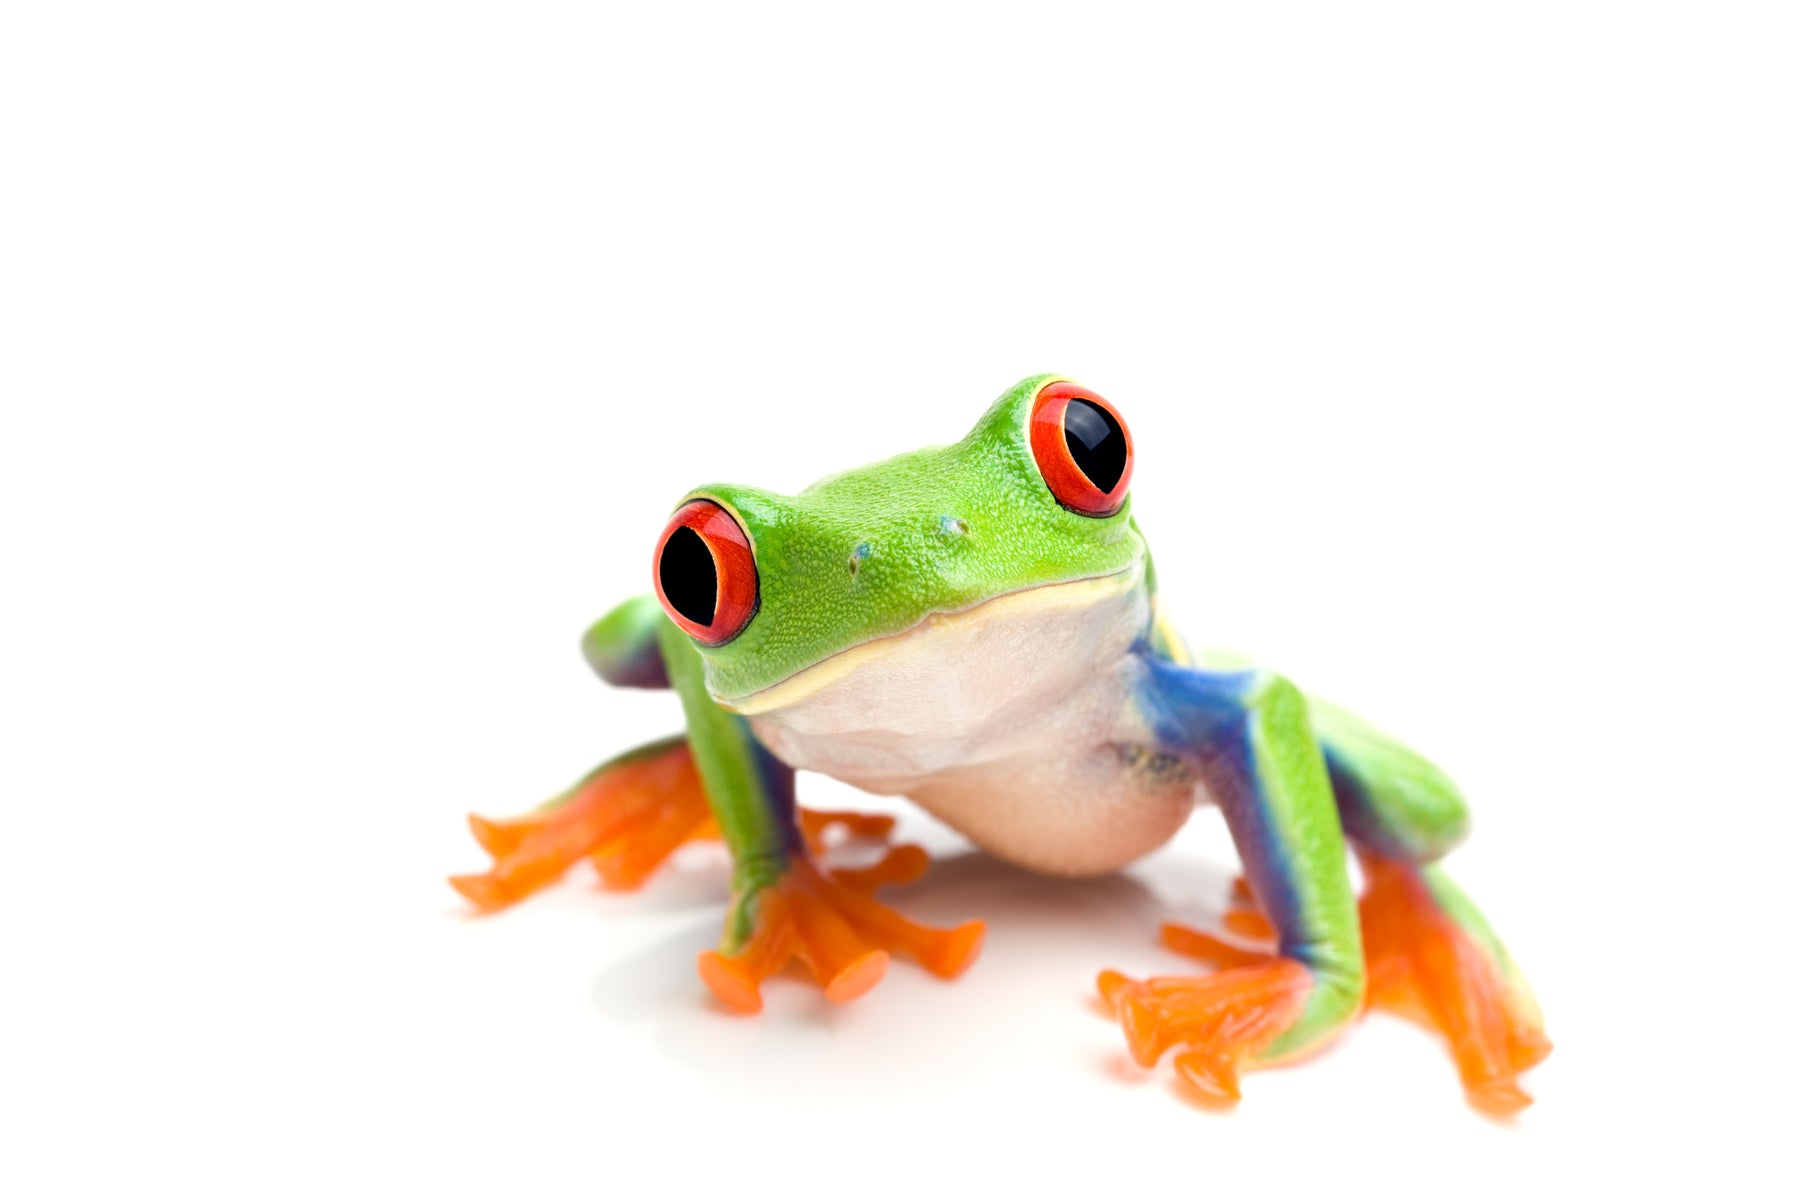 How to Buy a Healthy Pet Reptile/Amphibian